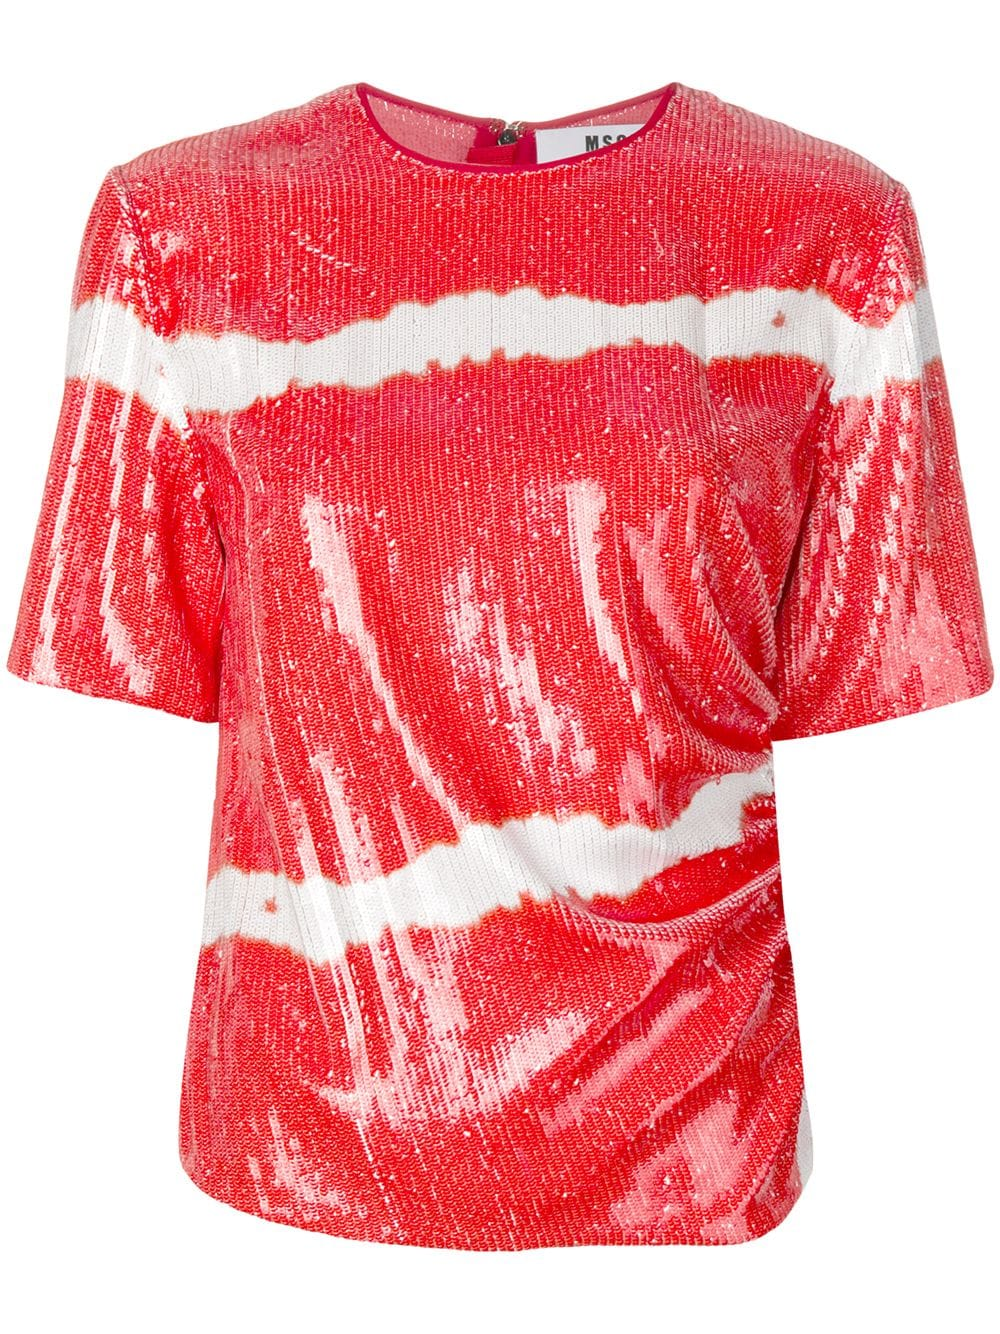 a84f5987cb96d9 Striped Red Shirt With Sequins - MSGM - Russocapri